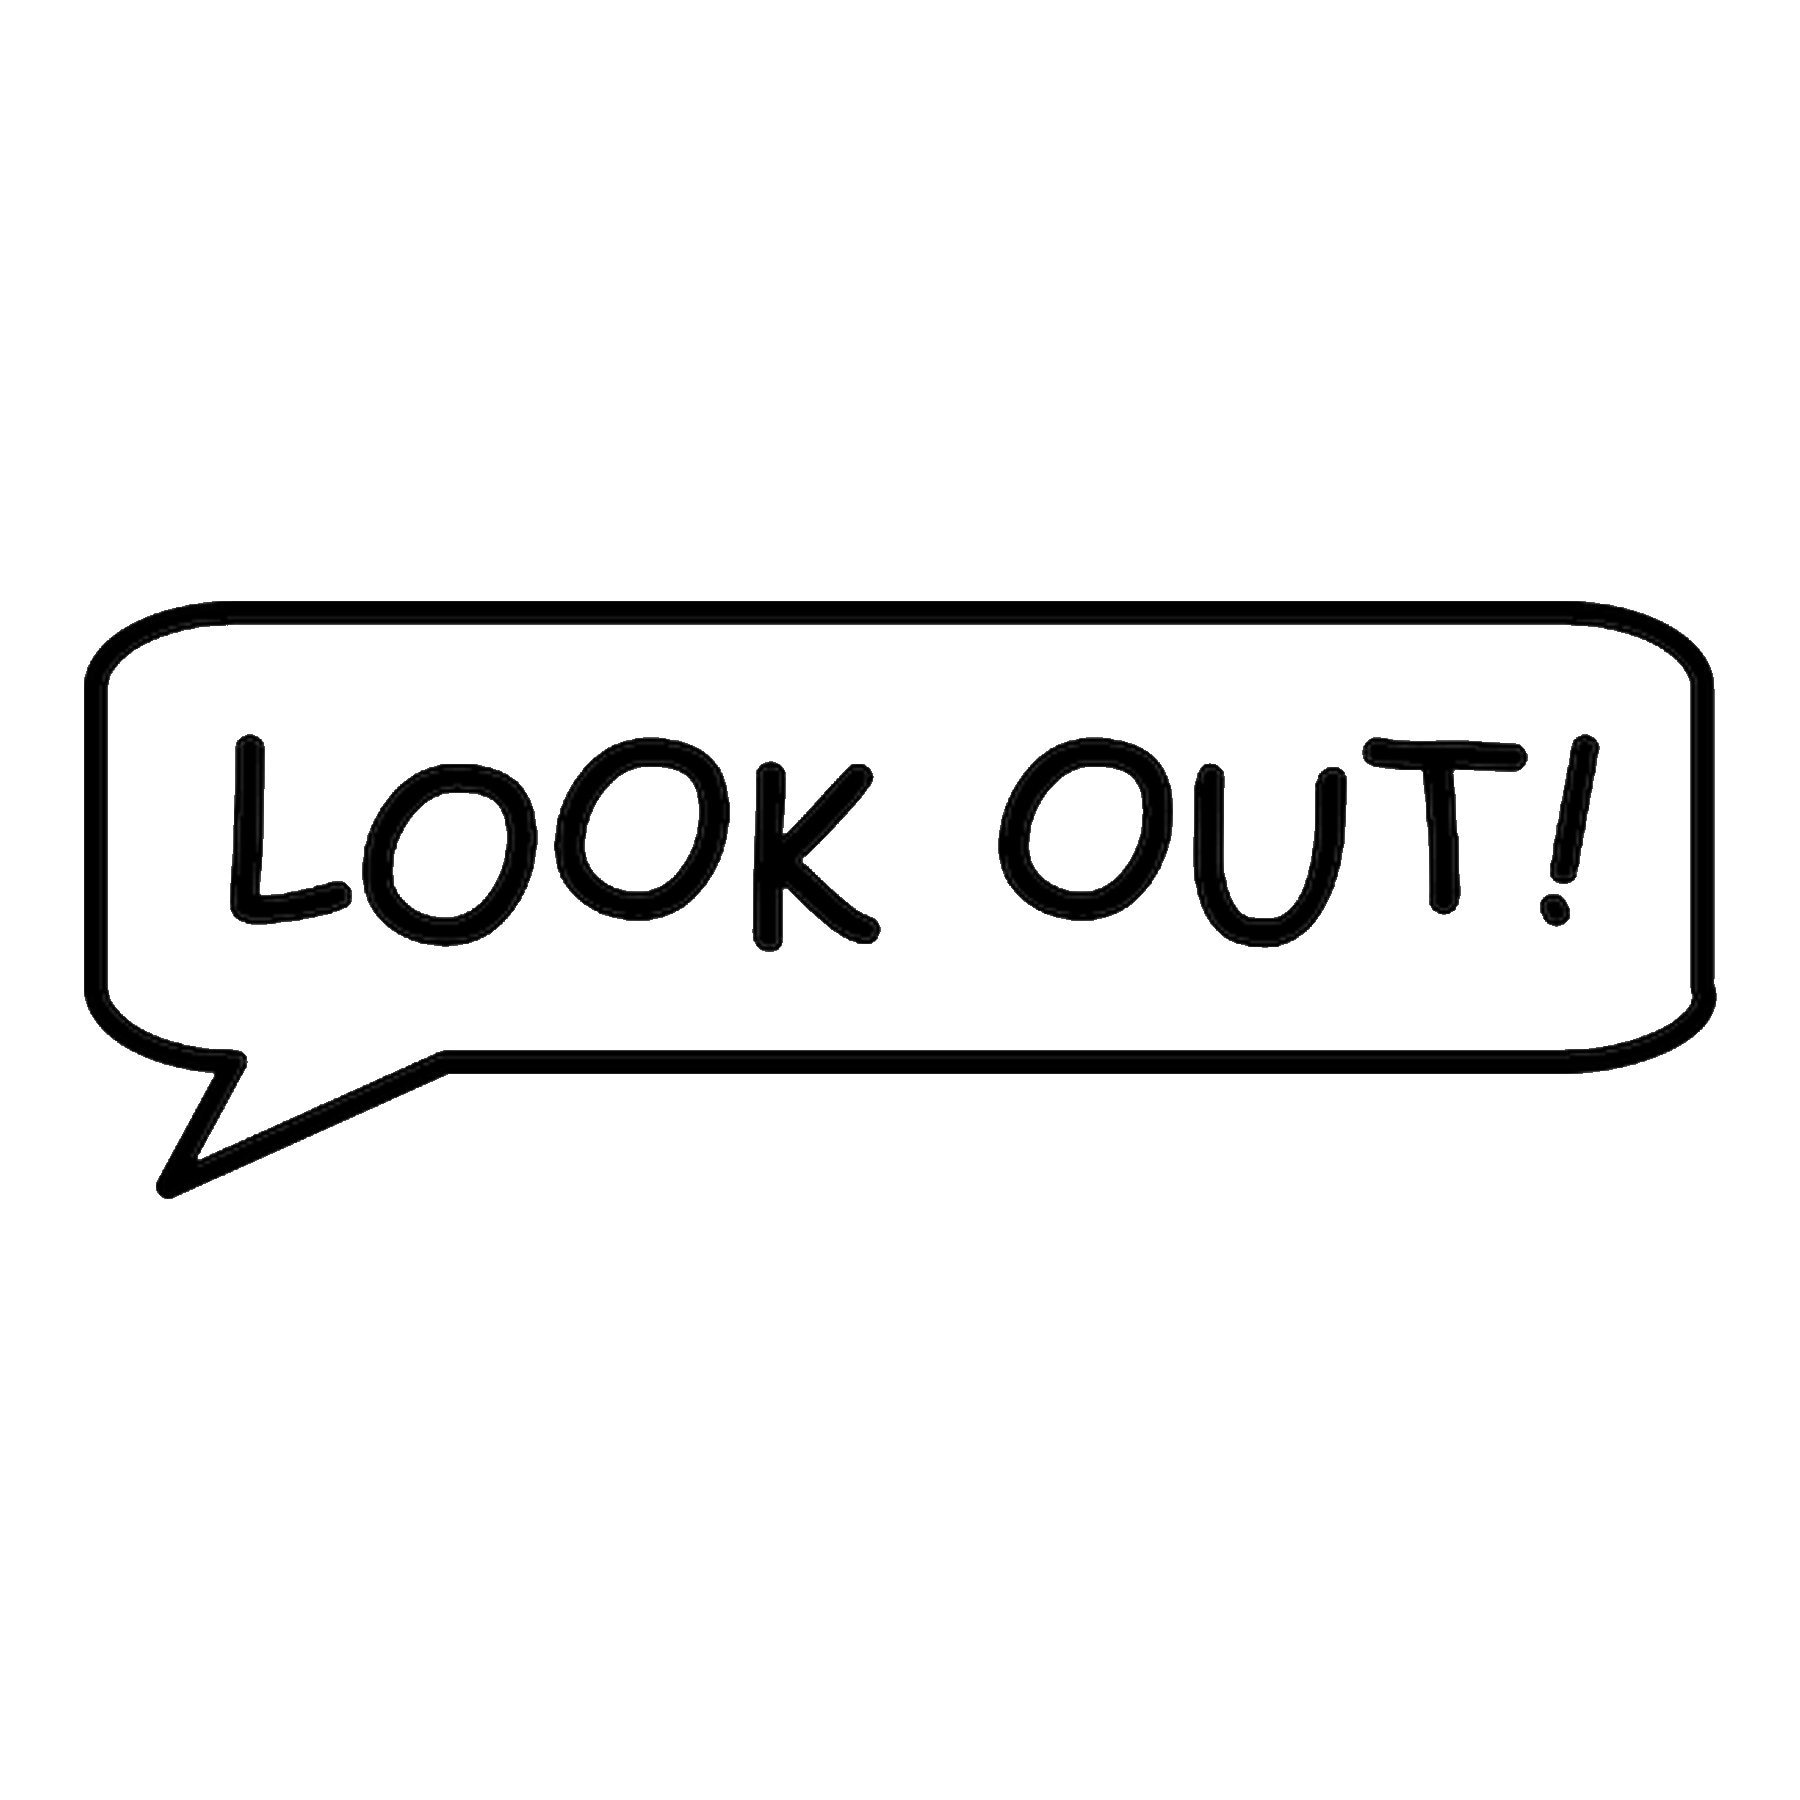 CAD$6.99 - Look Out! Call out Vinyl Decal - various sizes and colors - colours